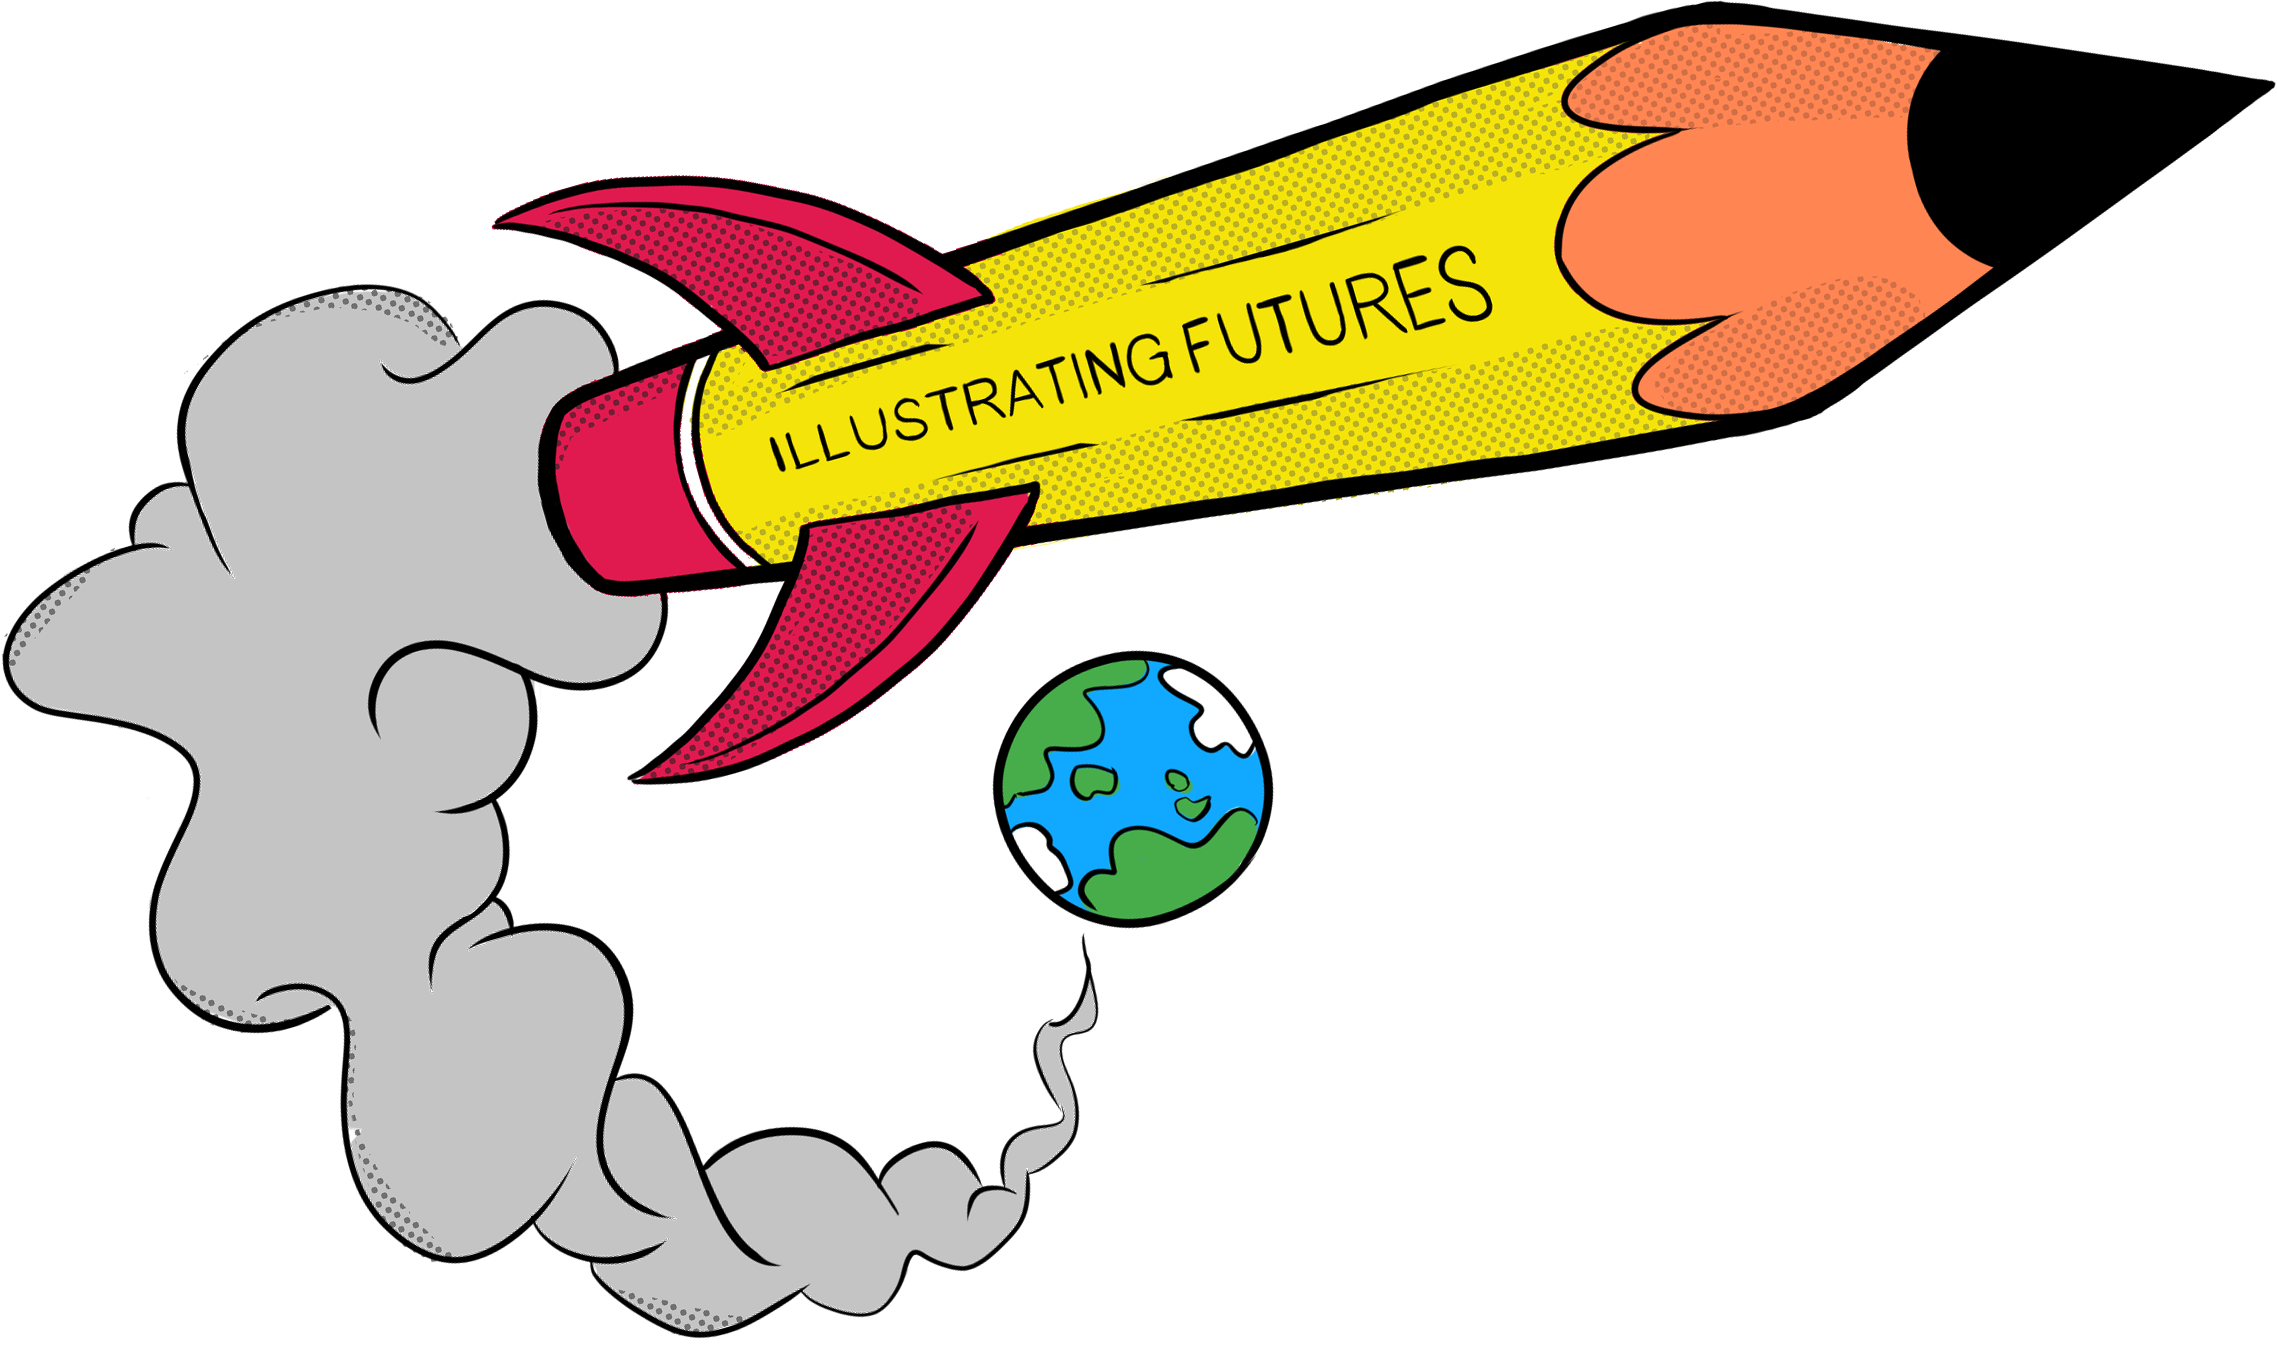 illustratingfutures logo.png